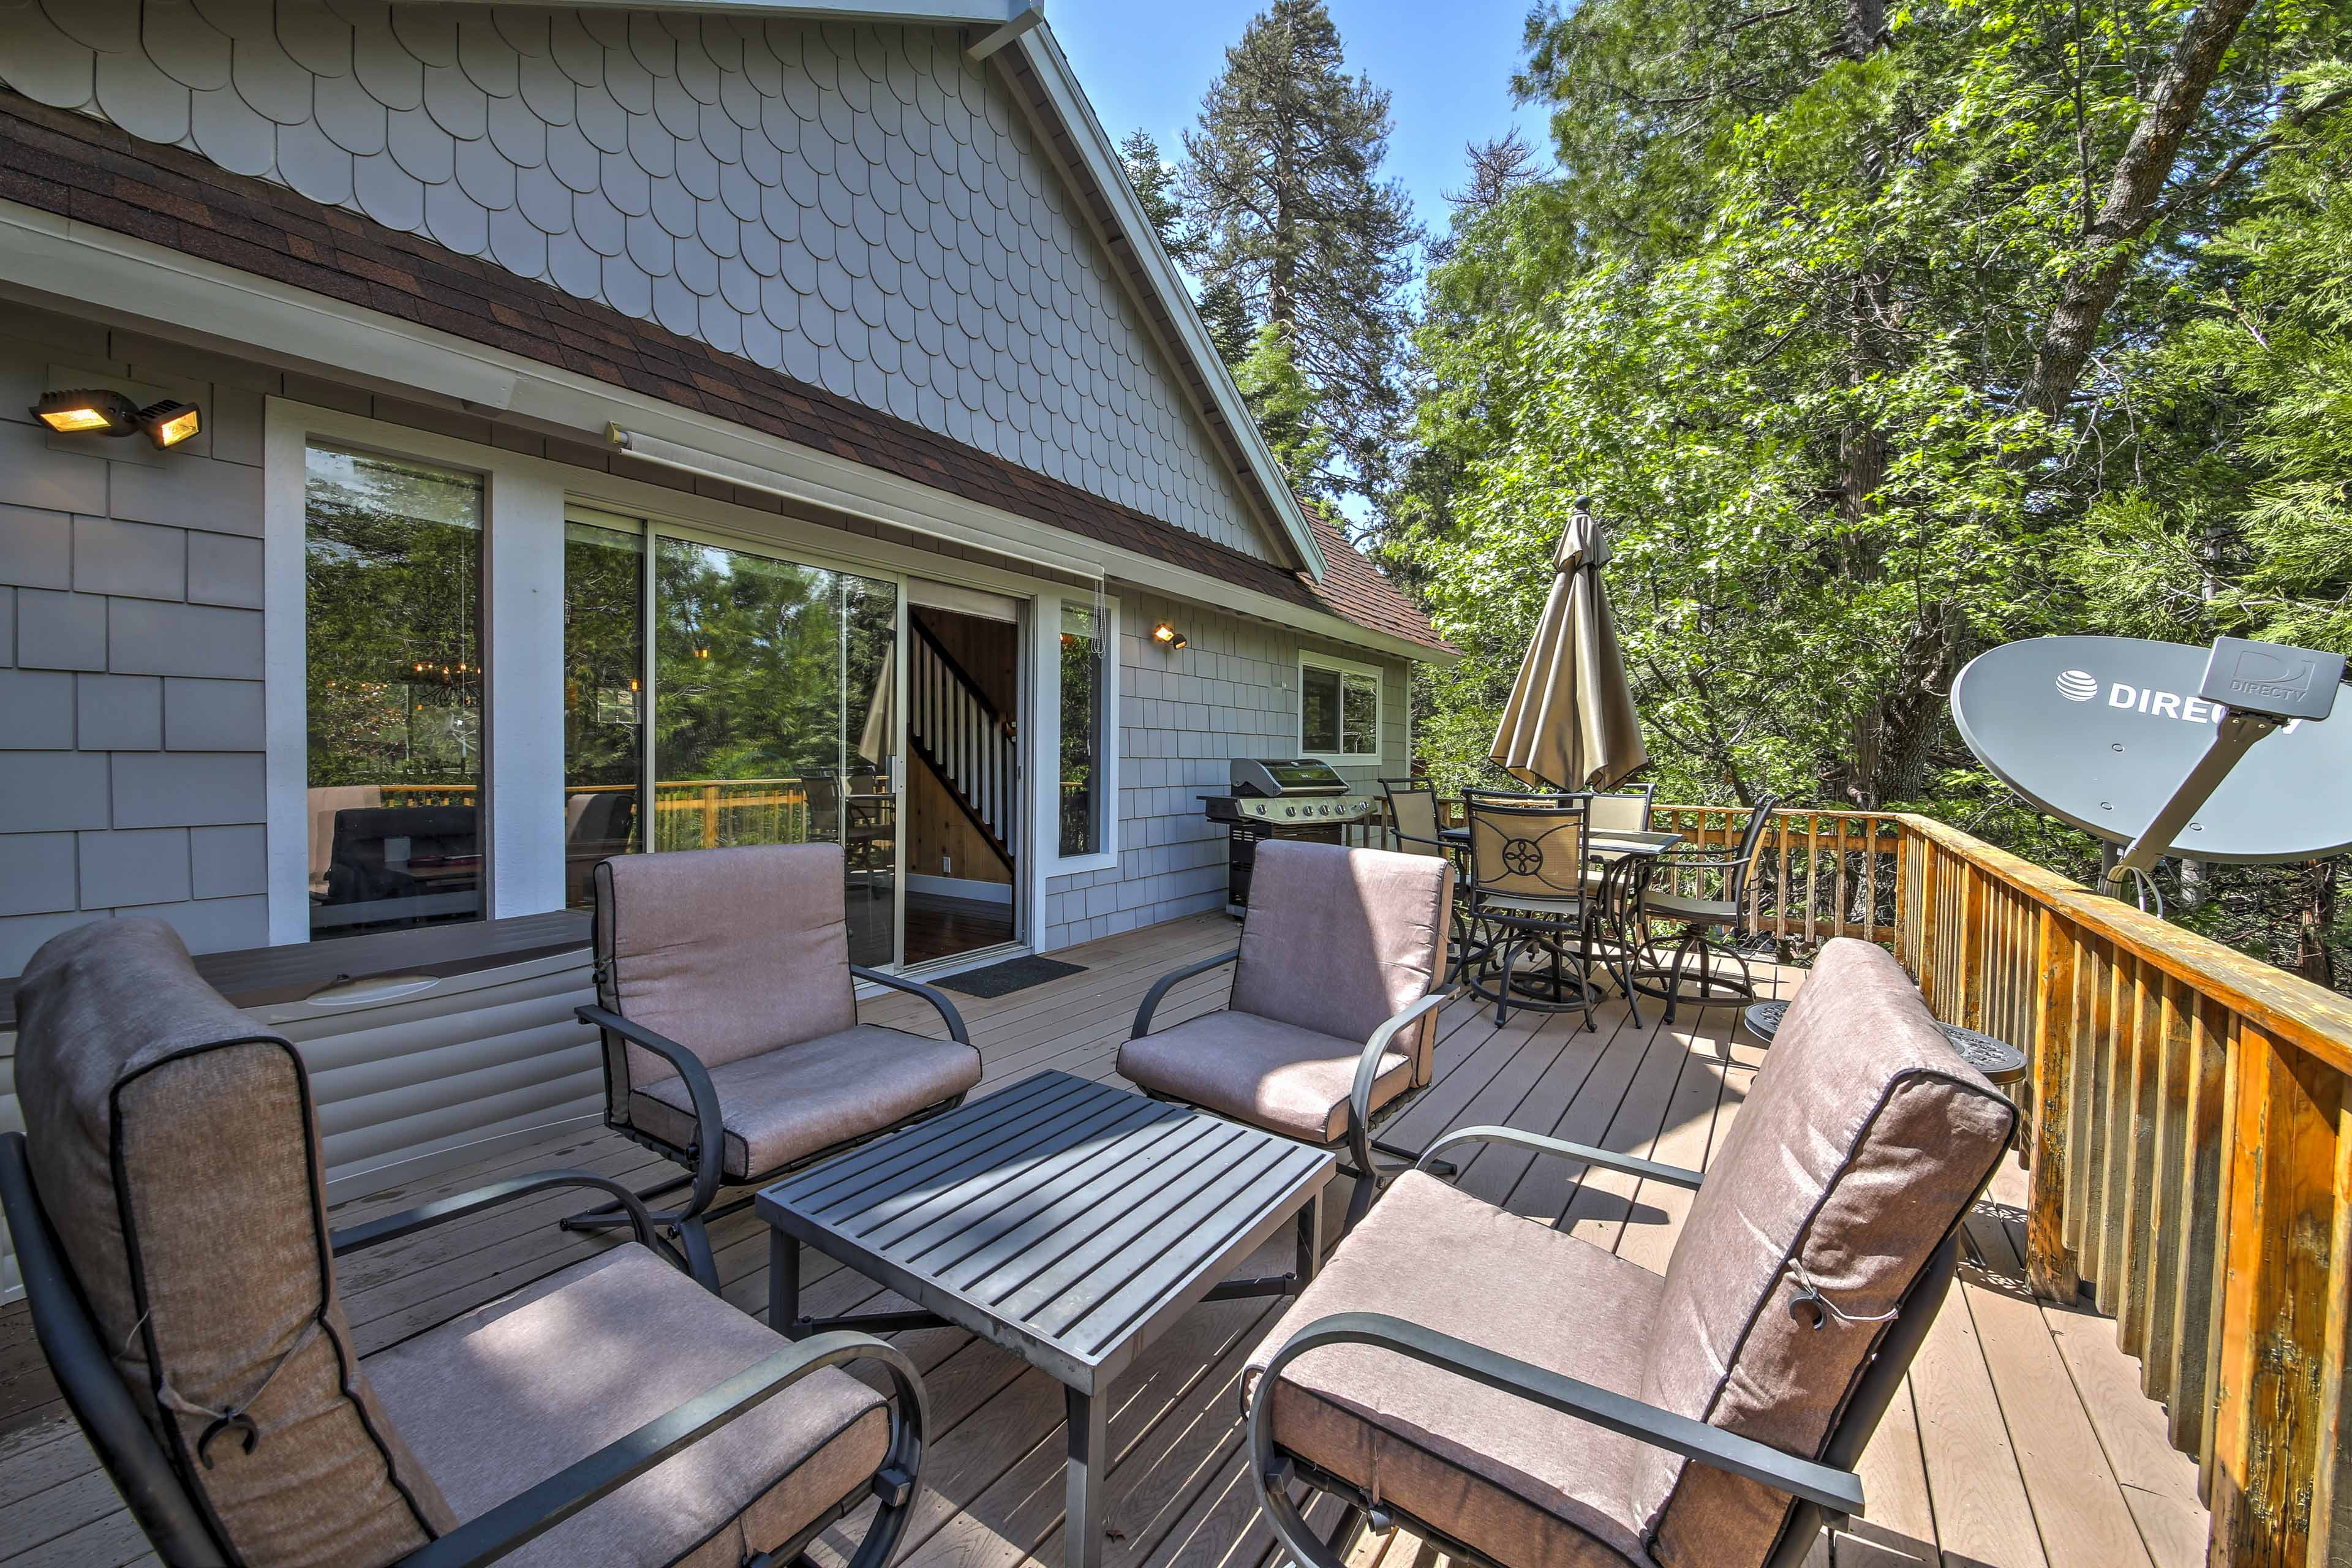 Fire up the gas grill and enjoy an al fresco meal at the outdoor dining table.